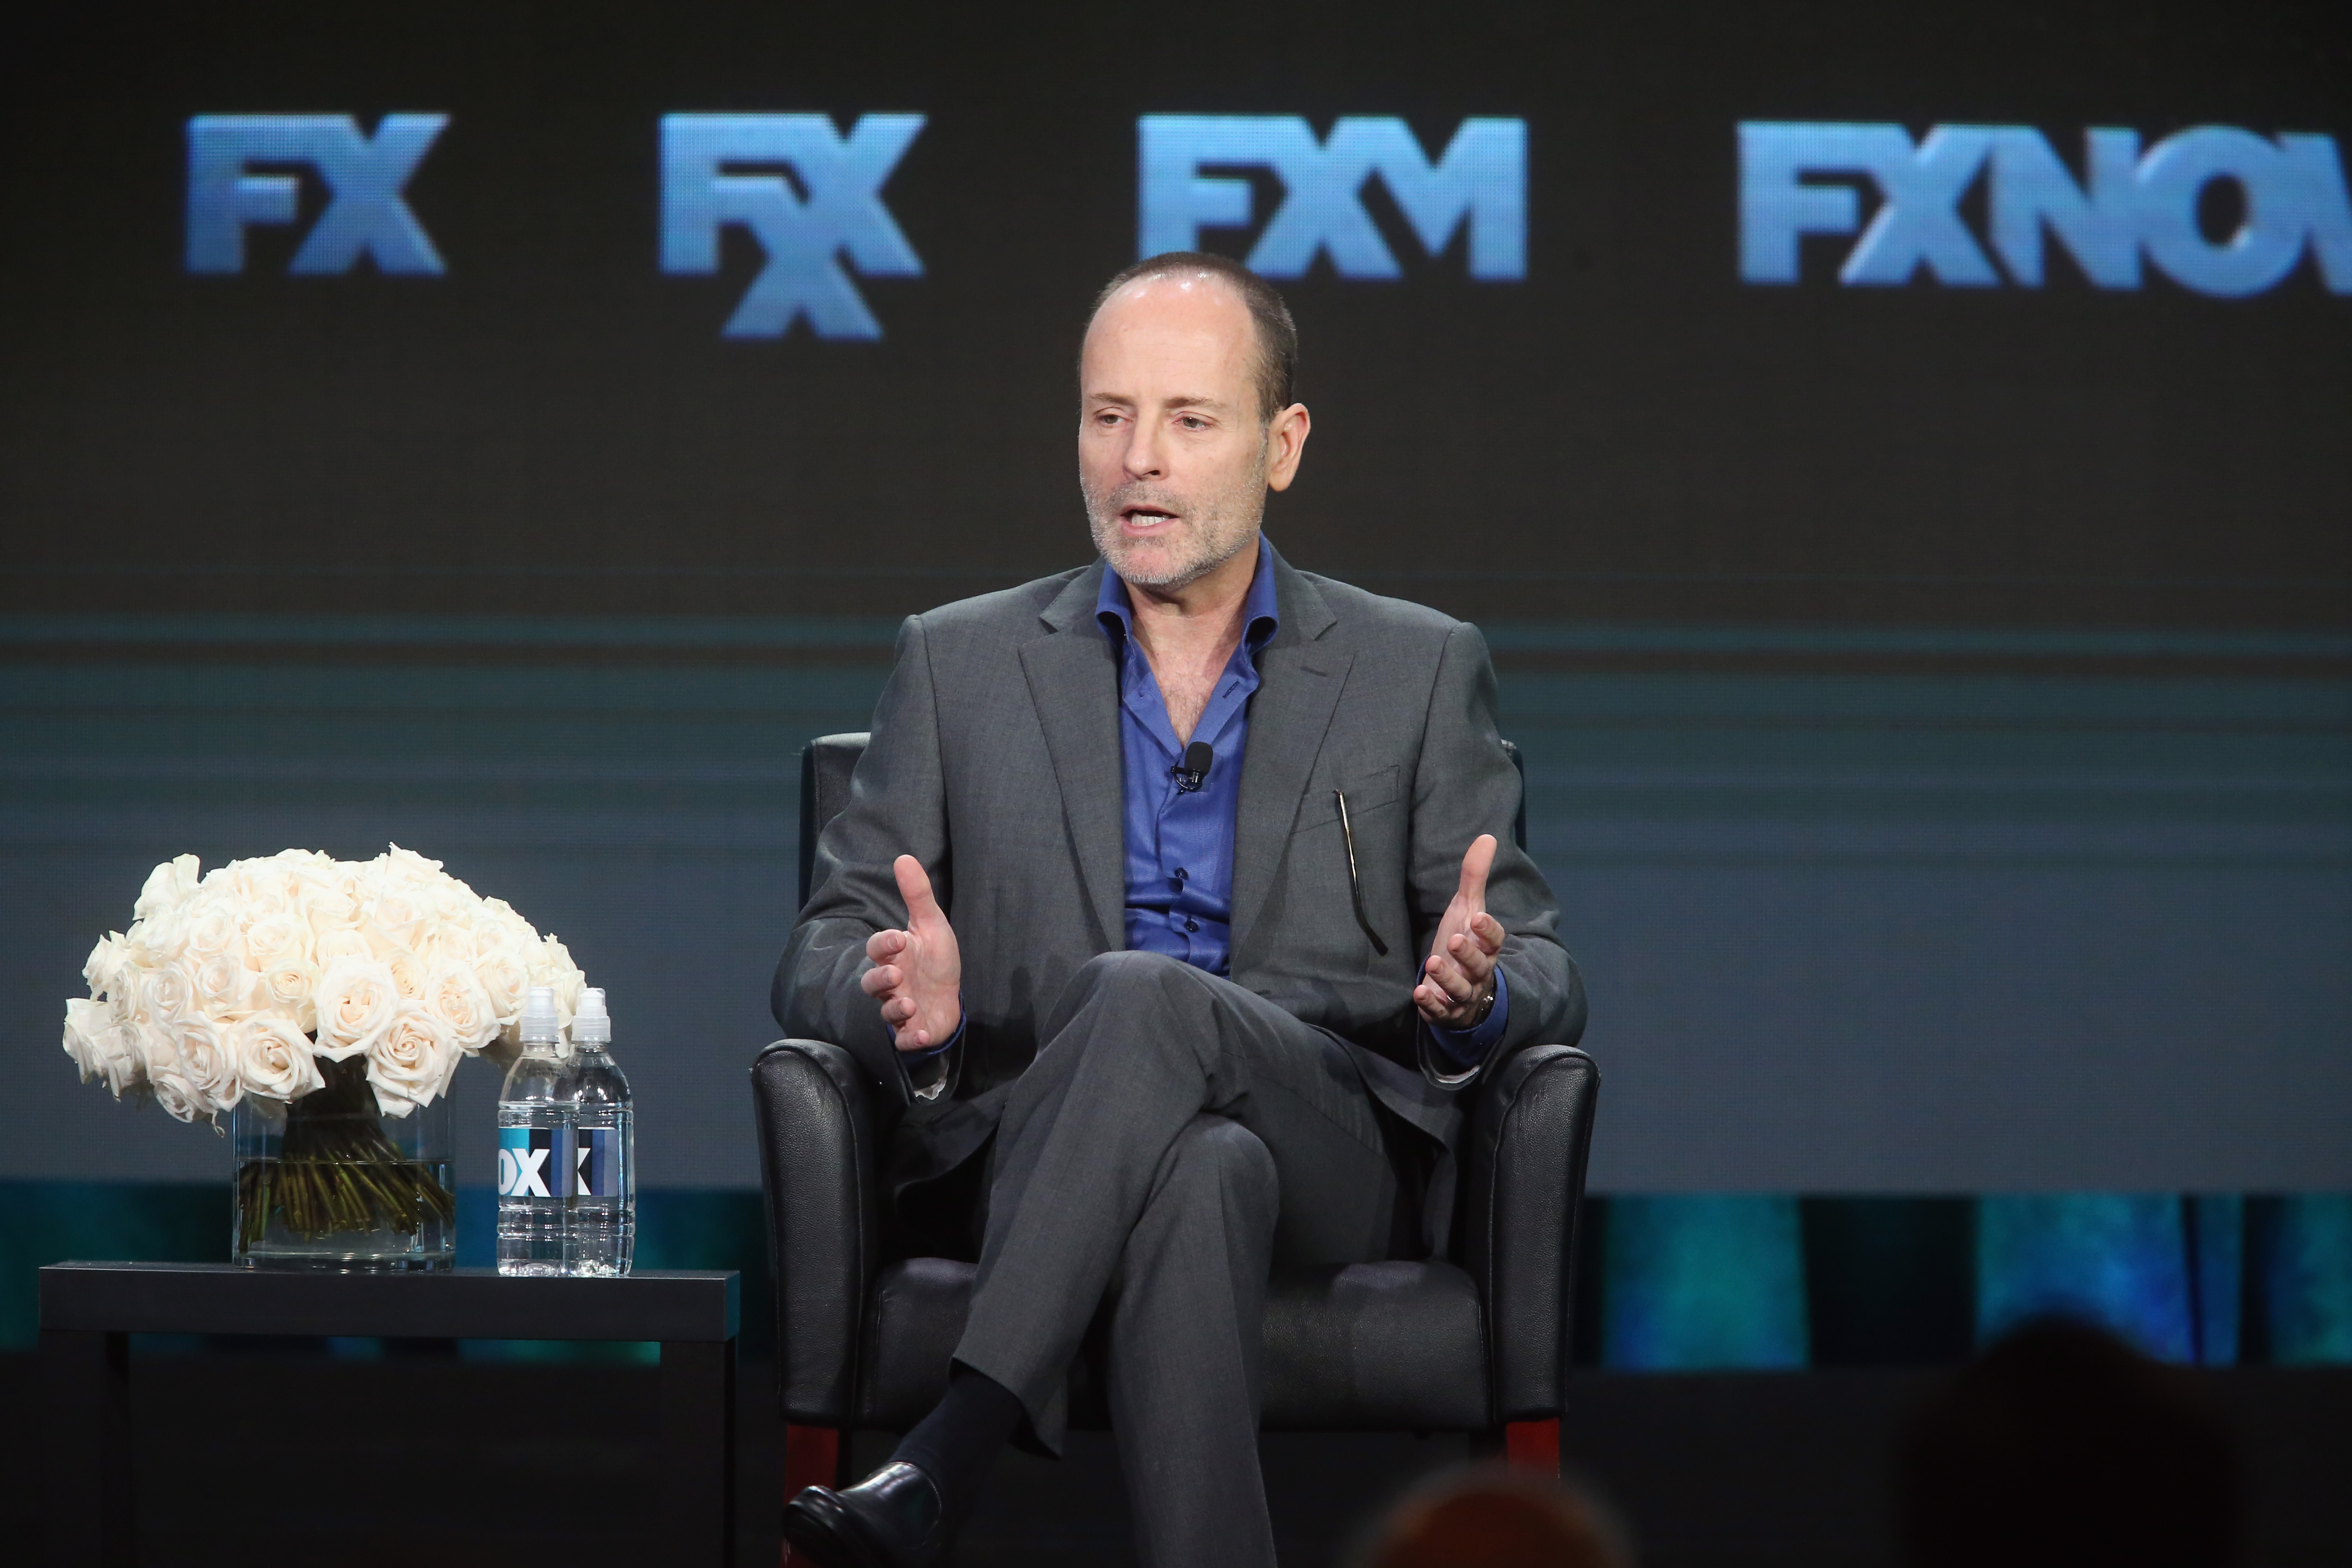 CEO, FX Networks and FX Productions John Landgraf speaks at the FX portion of the 2015 Winter TCA Tour.